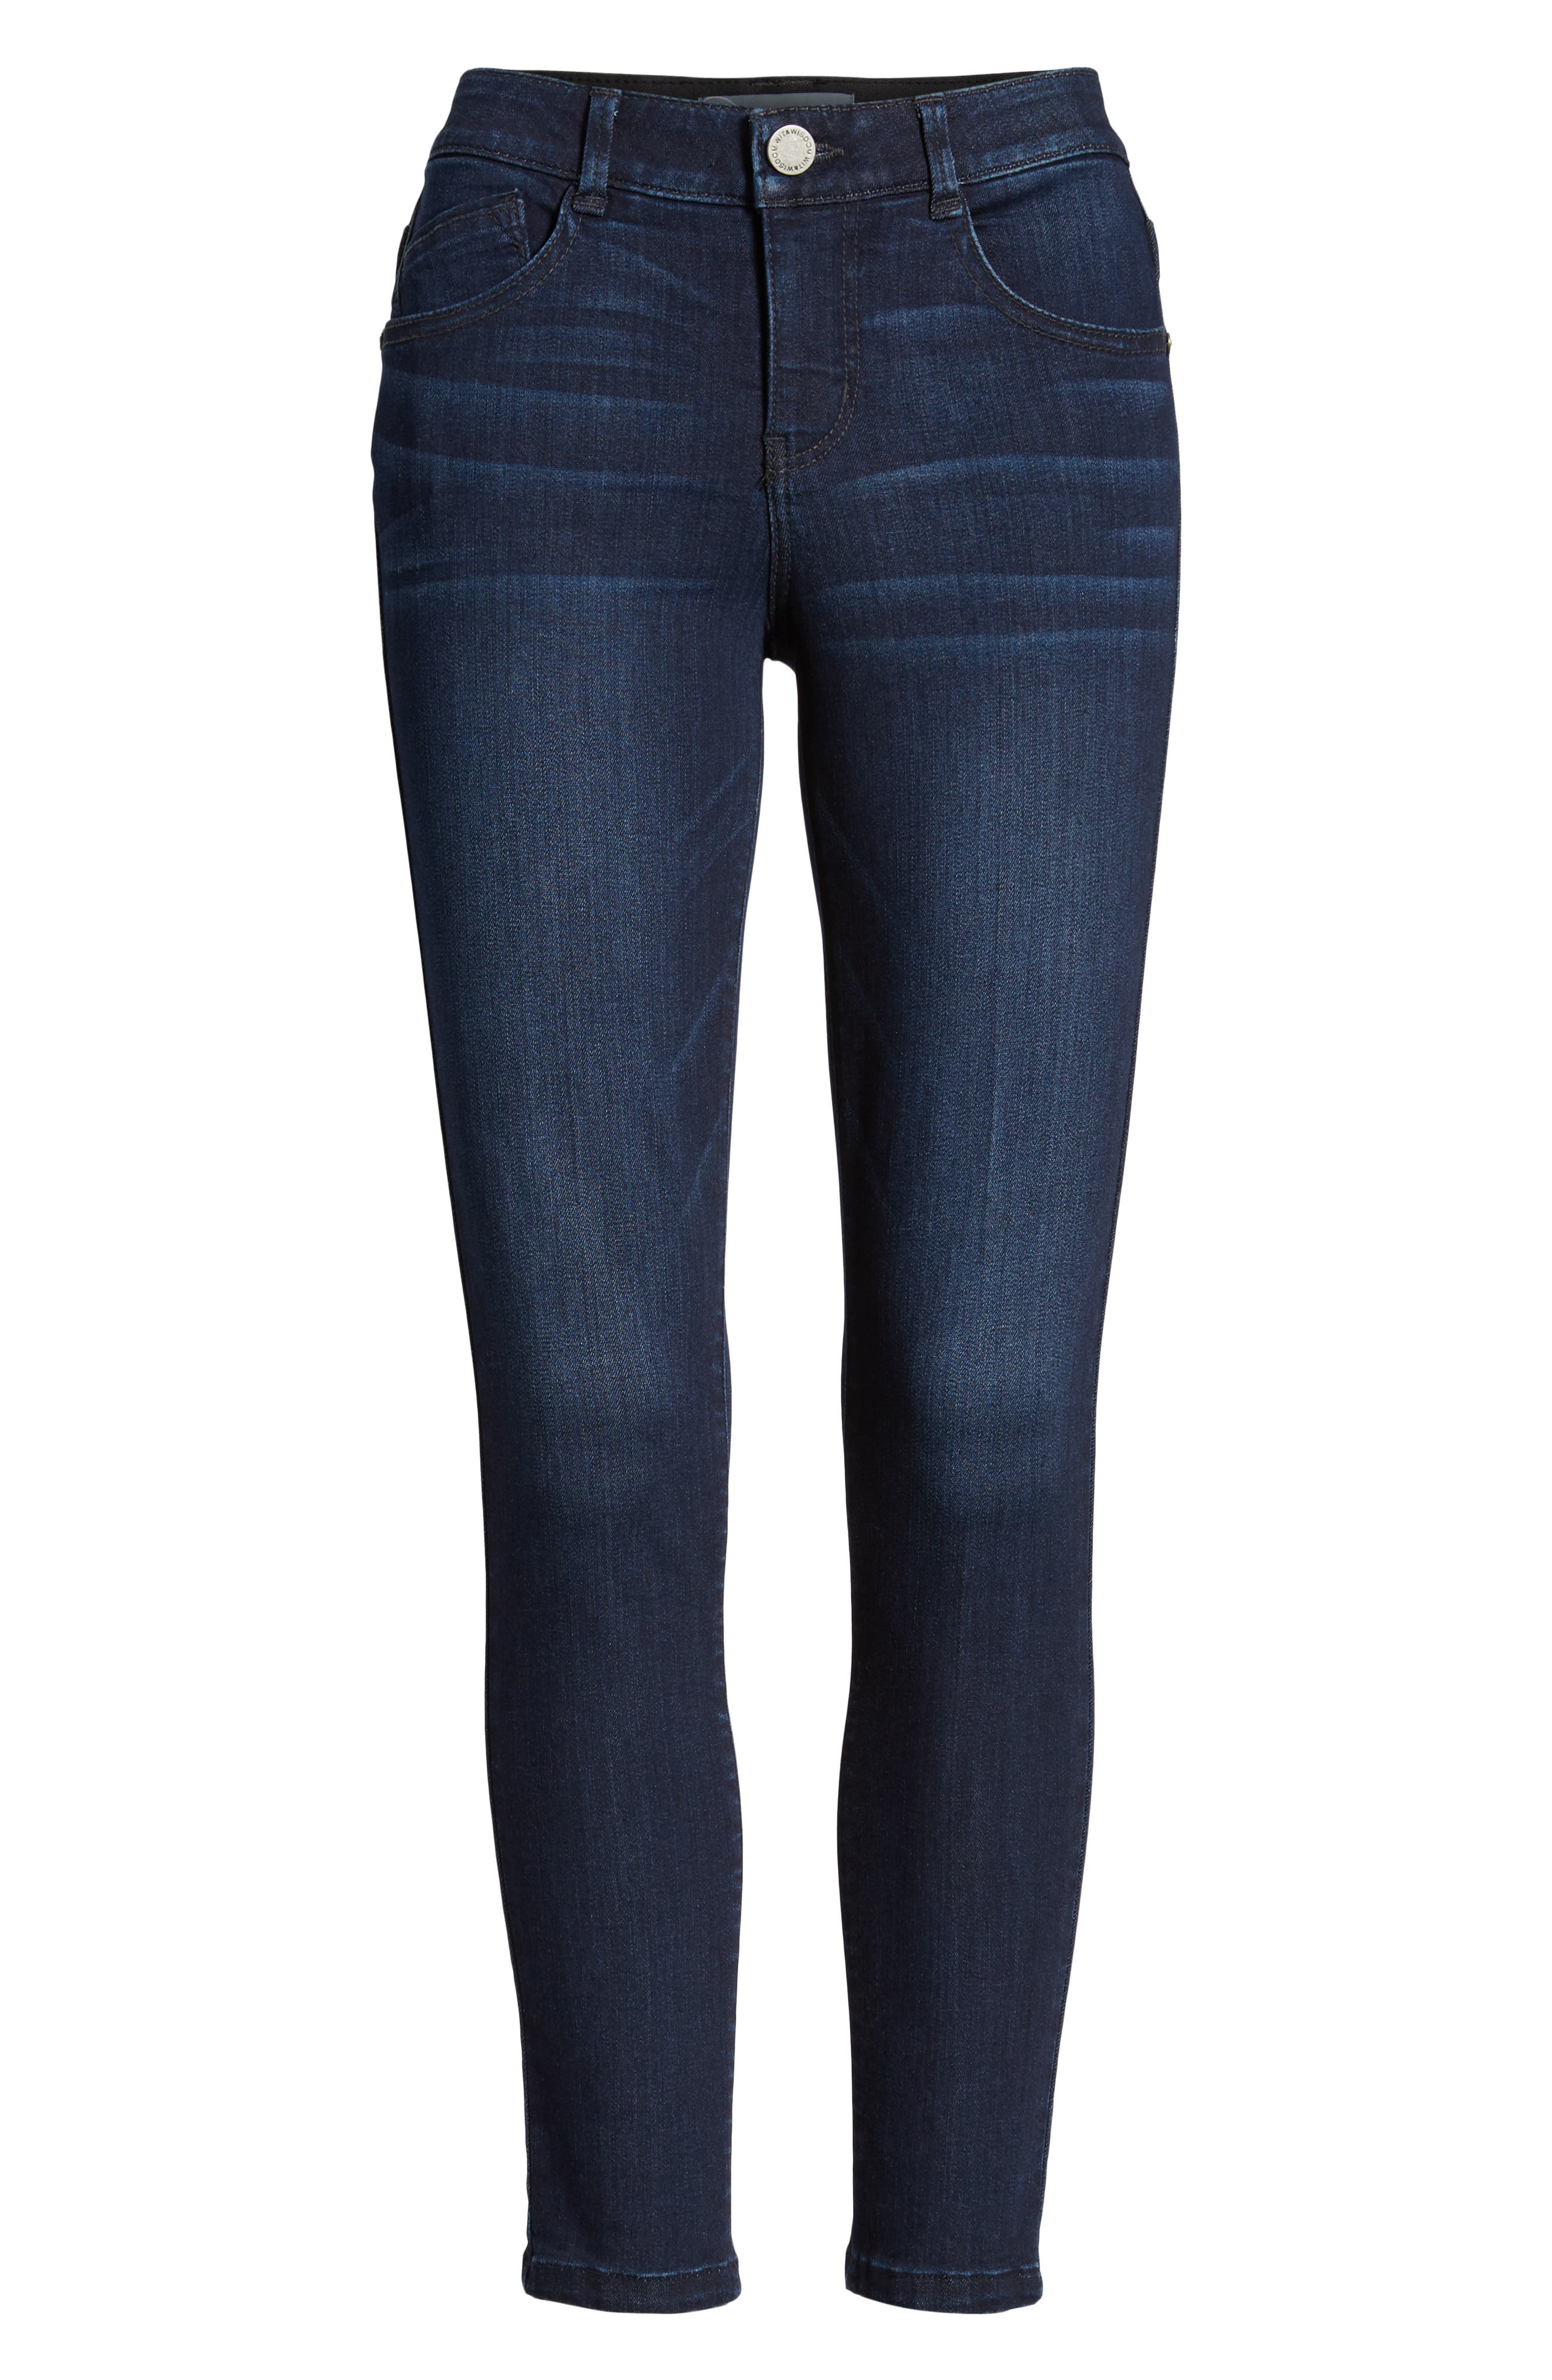 Ab-solution Skinny Jeans,                             Alternate thumbnail 7, color,                             402